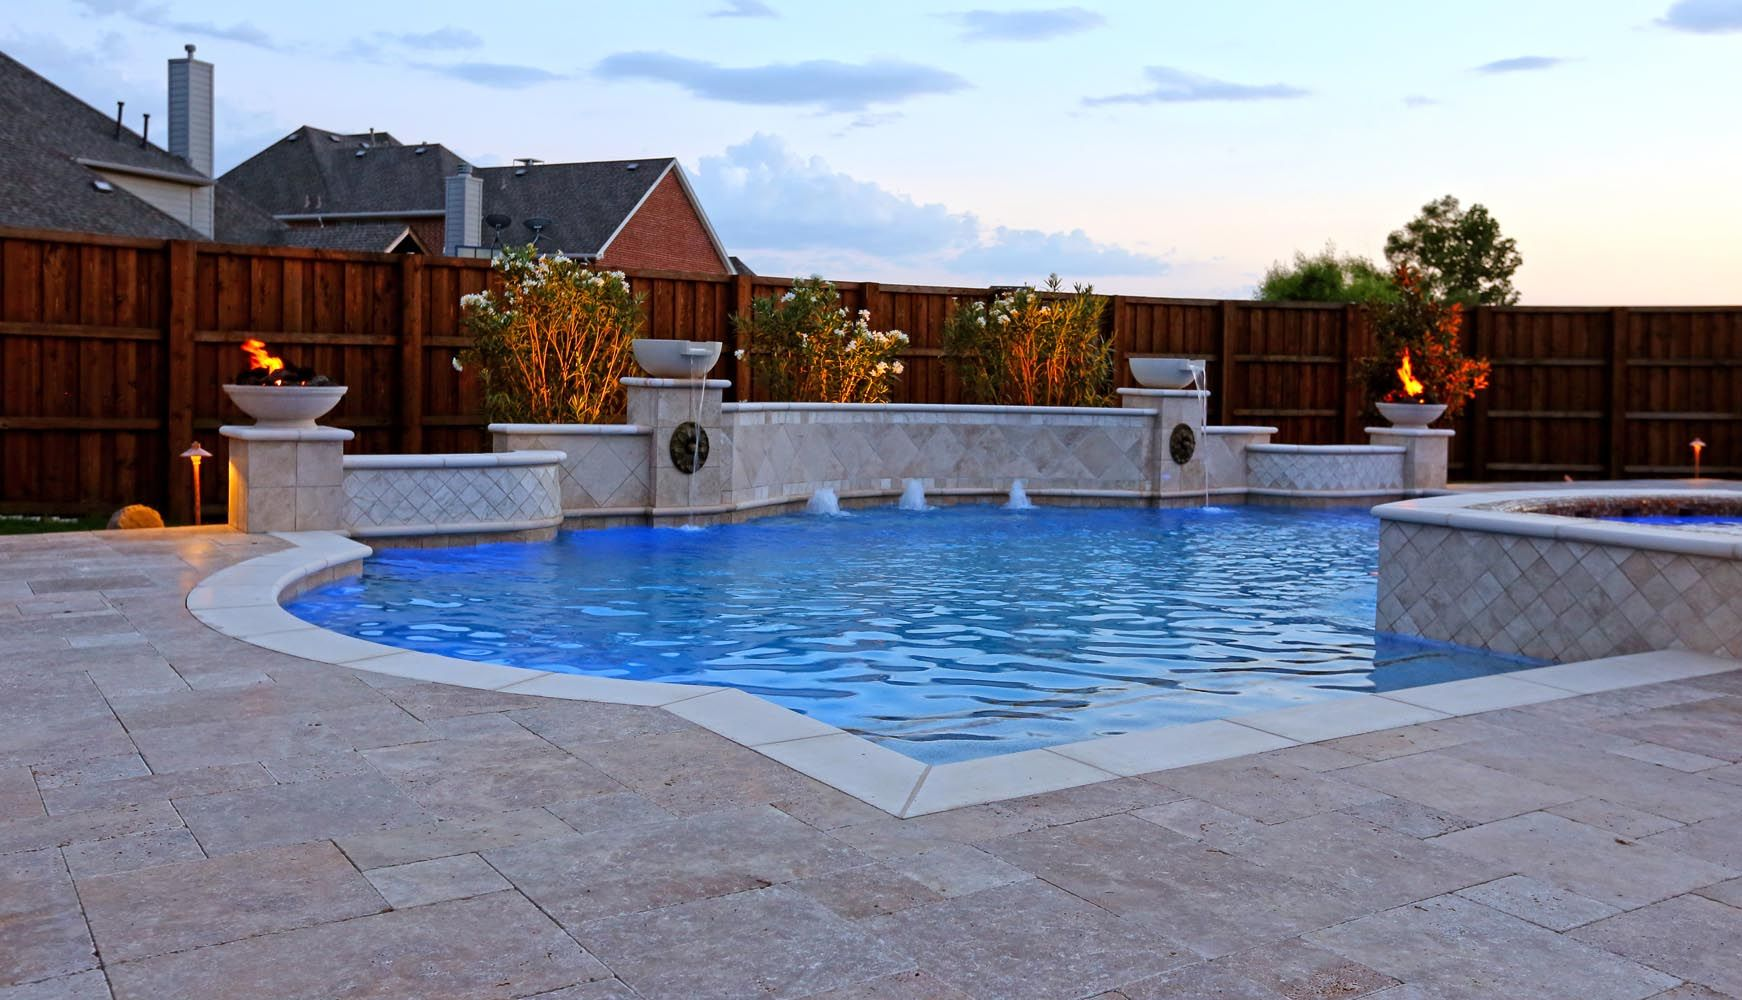 Grecian Pool With Bubblers Led Lighting Travertine Water Bowls And Travertine Walls And Columns In Frisco Geometric Pool Pool Remodel Pool Designs